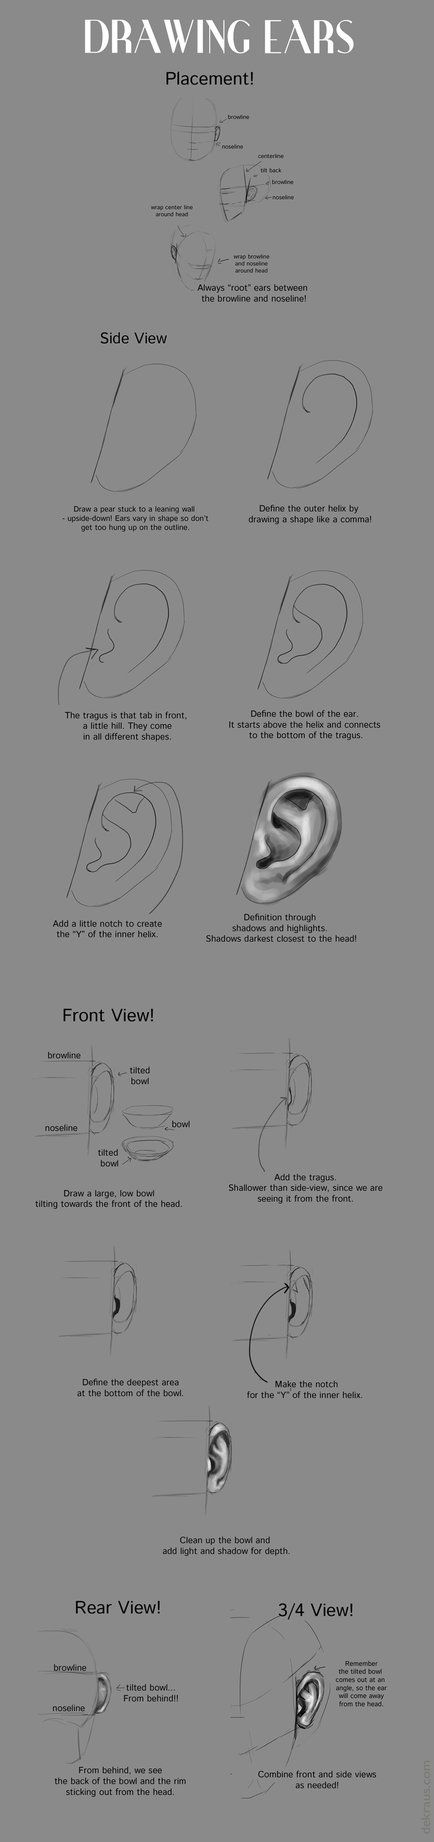 By request. Just a quick walkthrough on ears, one of my favorite body parts to draw (as evident by how often I show them!)